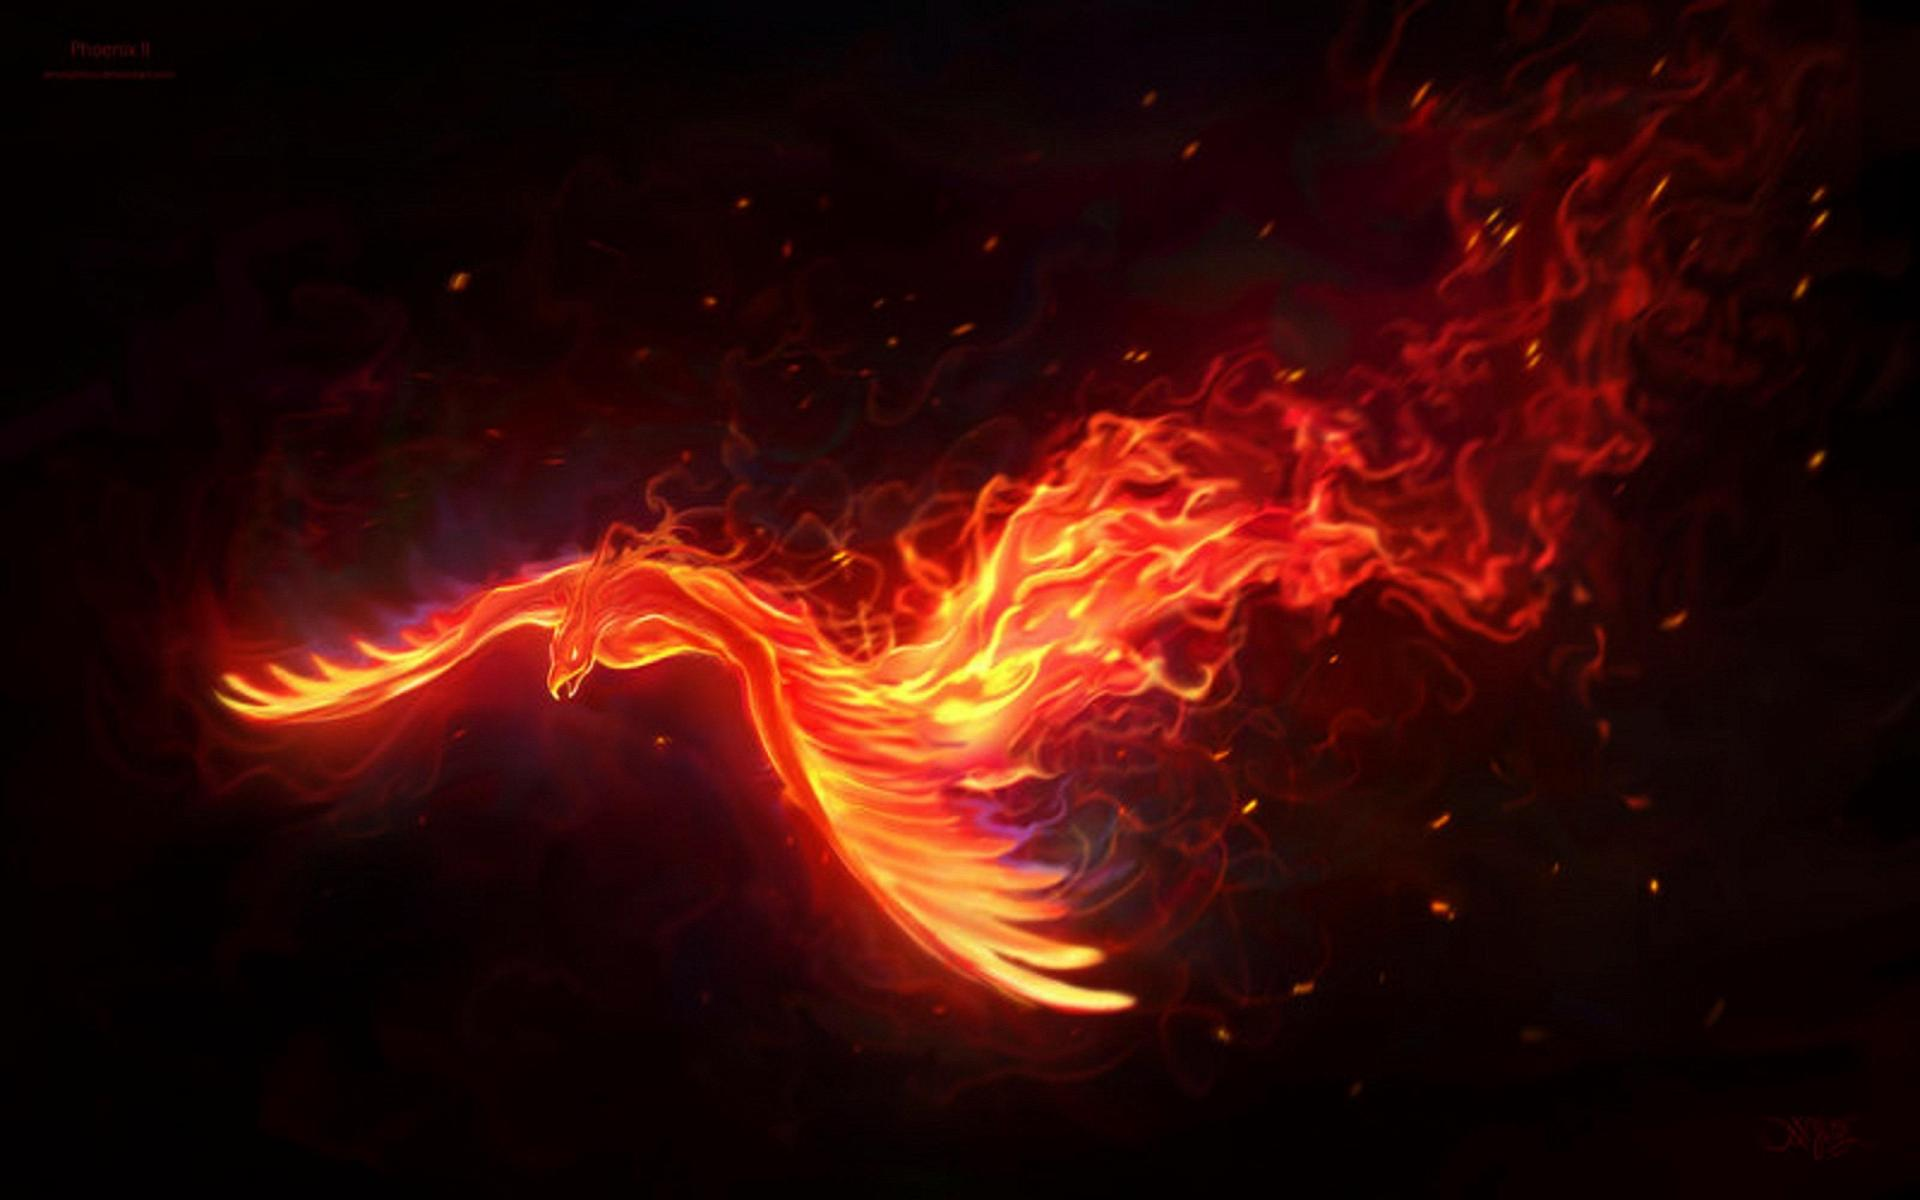 Fire phoenix   89329   High Quality and Resolution Wallpapers on 1920x1200